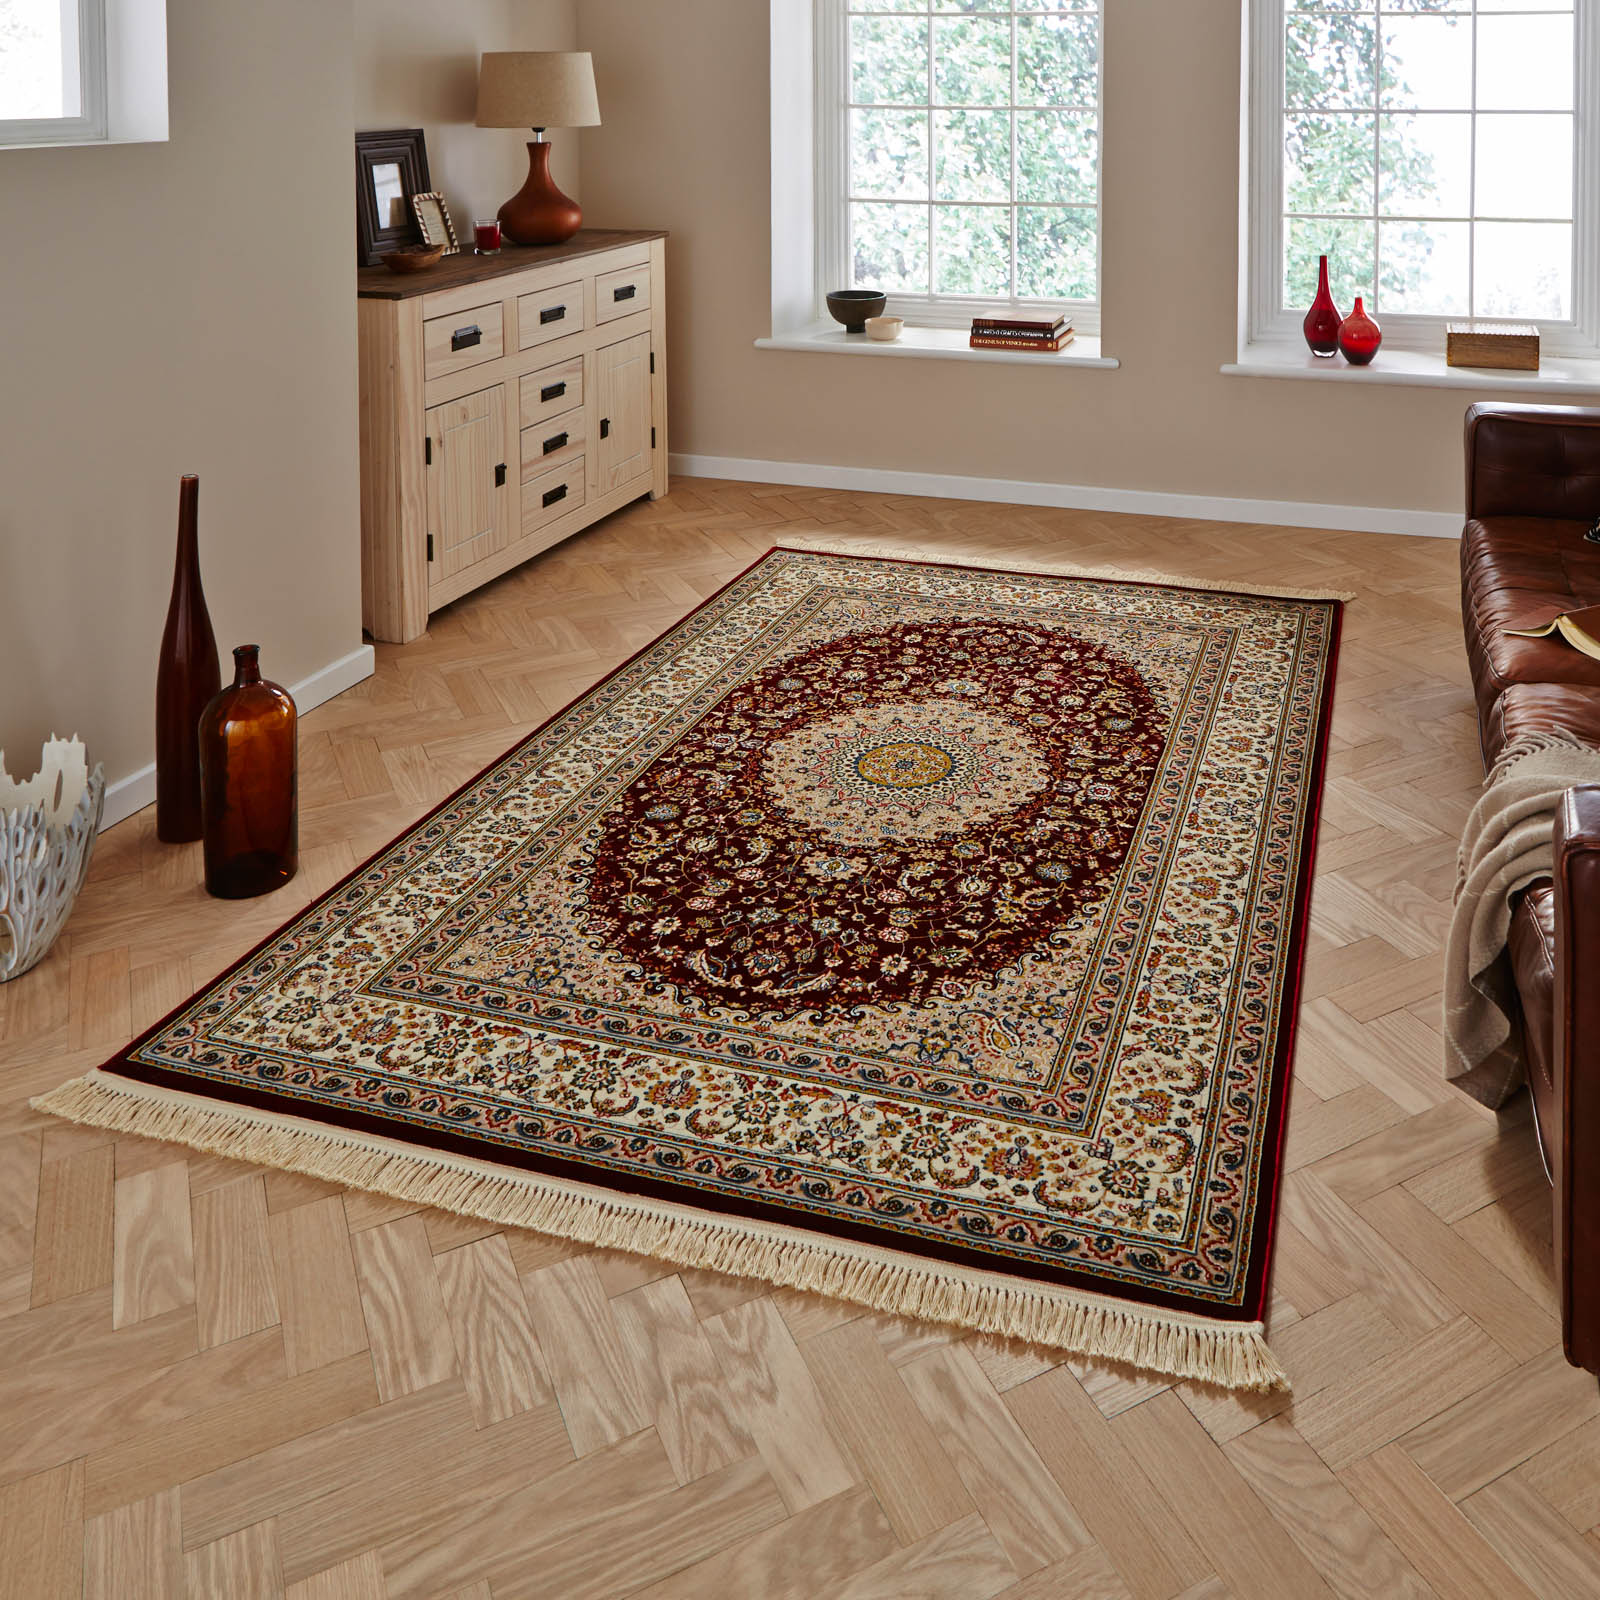 Heritage 0227A Rugs in Red